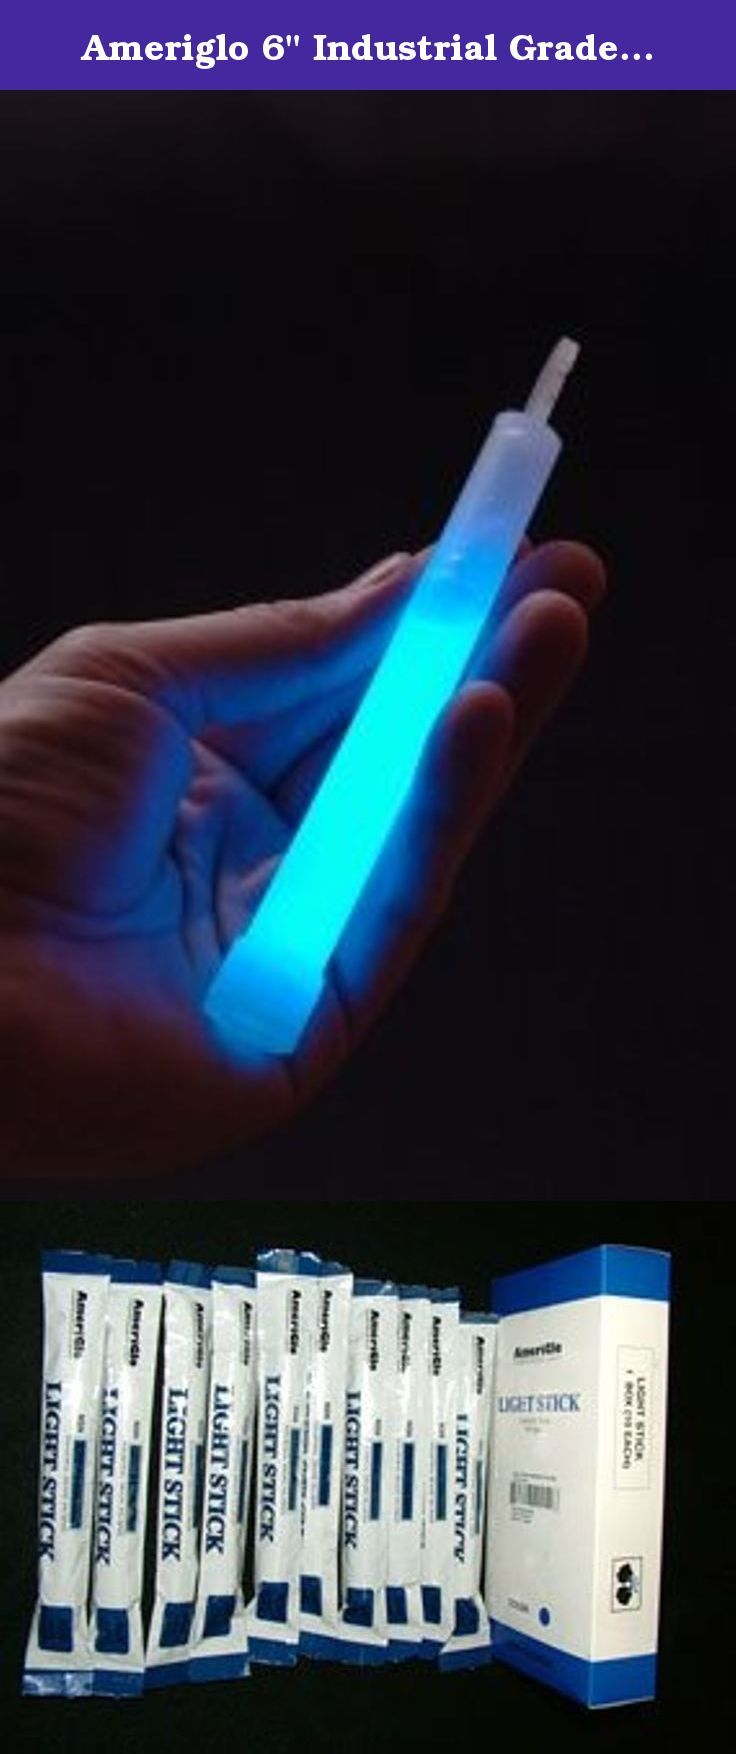 """Ameriglo 6"""" Industrial Grade Safety Light Sticks, 8-hour Tactical: Blue (10 Pack). Used by military, law enforcement, paramedics, campers, hikers, scouts, utility companies, hotels, schools, boaters, and well-prepared individuals. Safe & Dependable to Use Meets Military Specifications Ideal for Long-Term Storage - up to 4 Years Manufactured in an ISO 9002 Certified Facility Various Colors and Sizes Provides up to 8 Hours of Useable Light Complies with Defense Logistics NSN Standards…"""